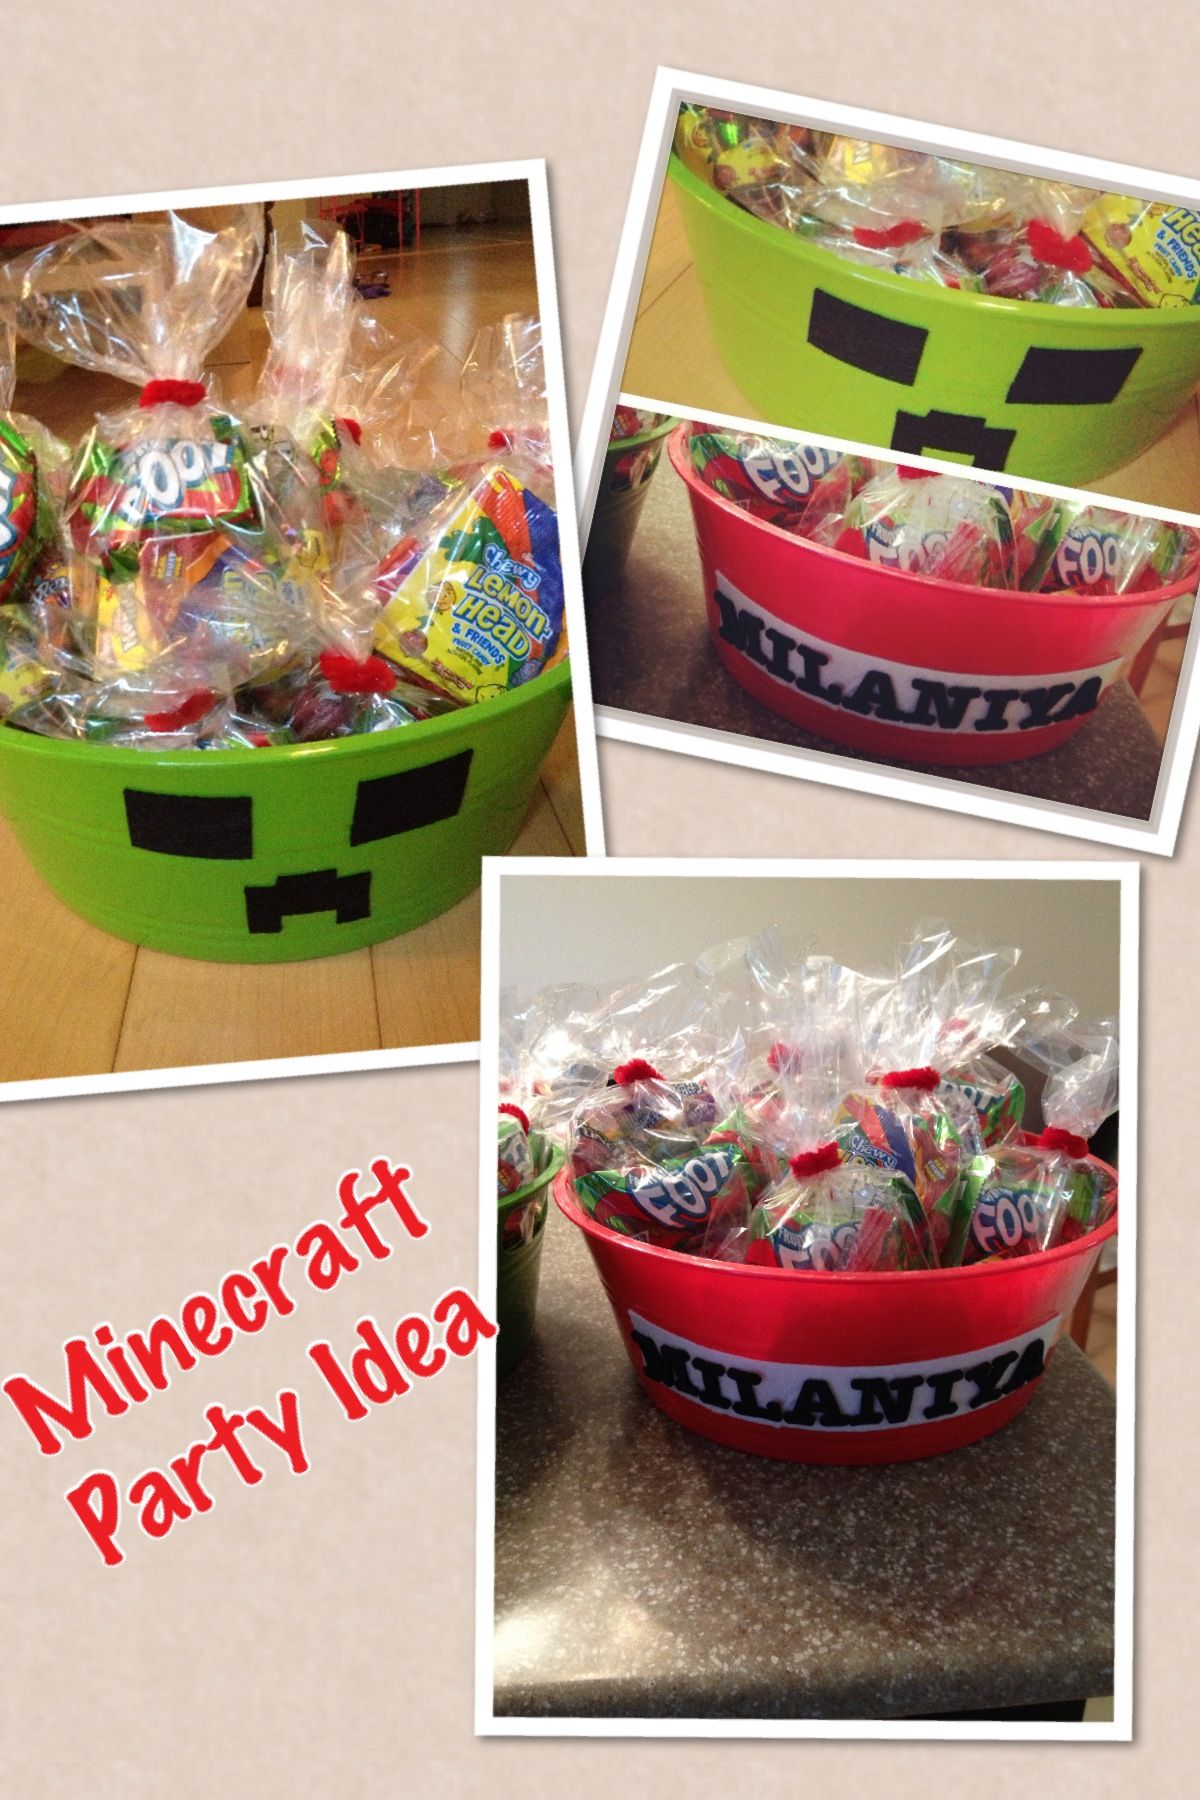 DIY Minecraft party idea Dollar Tree containers and adhesive fabric